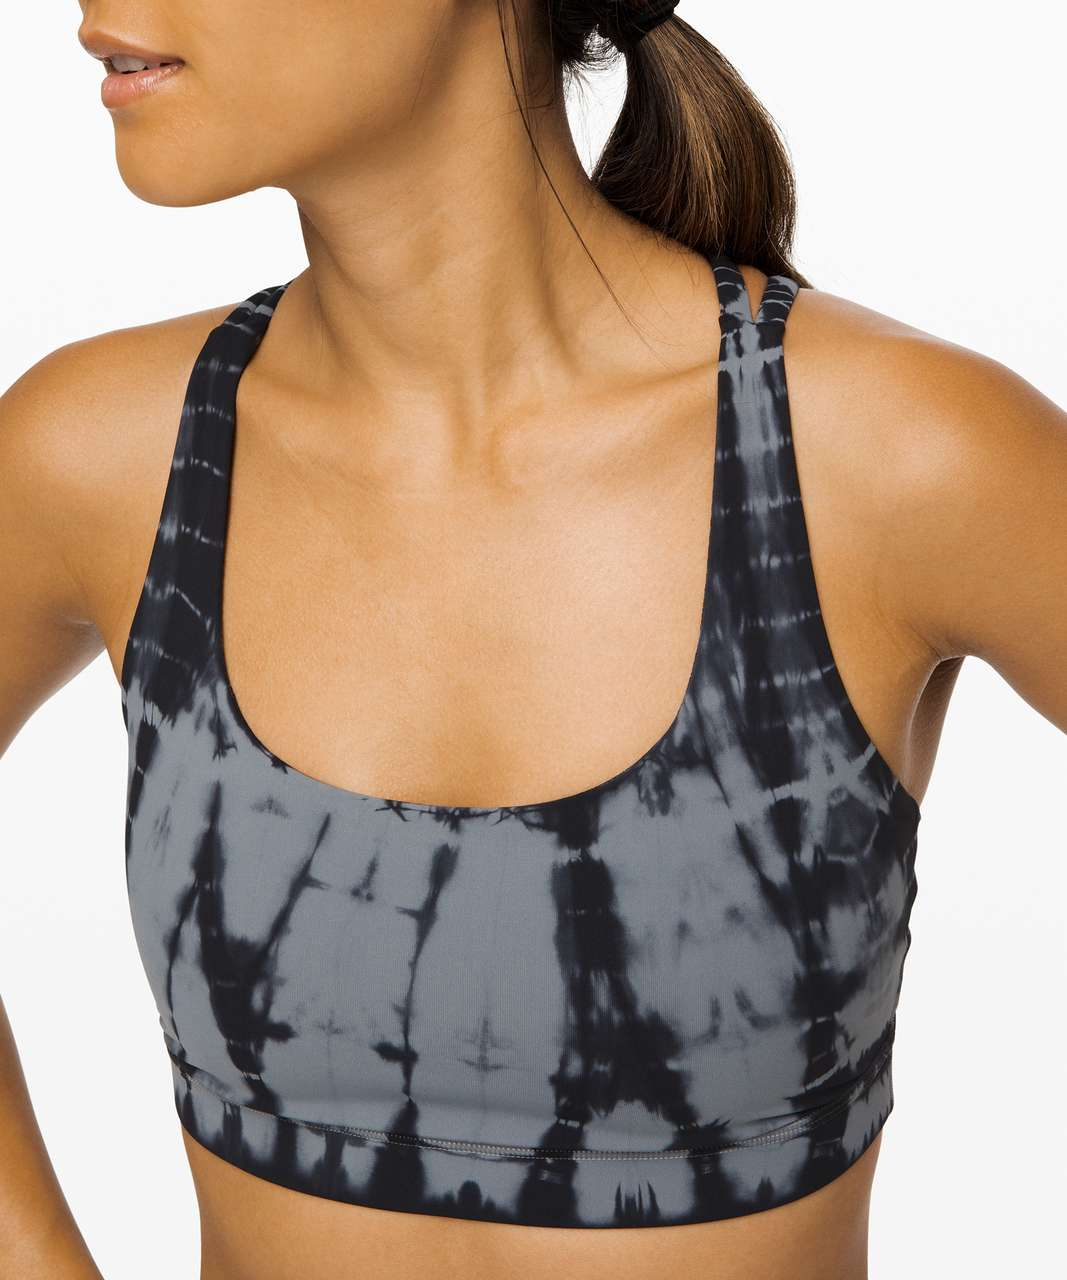 Lululemon Energy Bra - Vert Shibori Magnet Grey Black Night